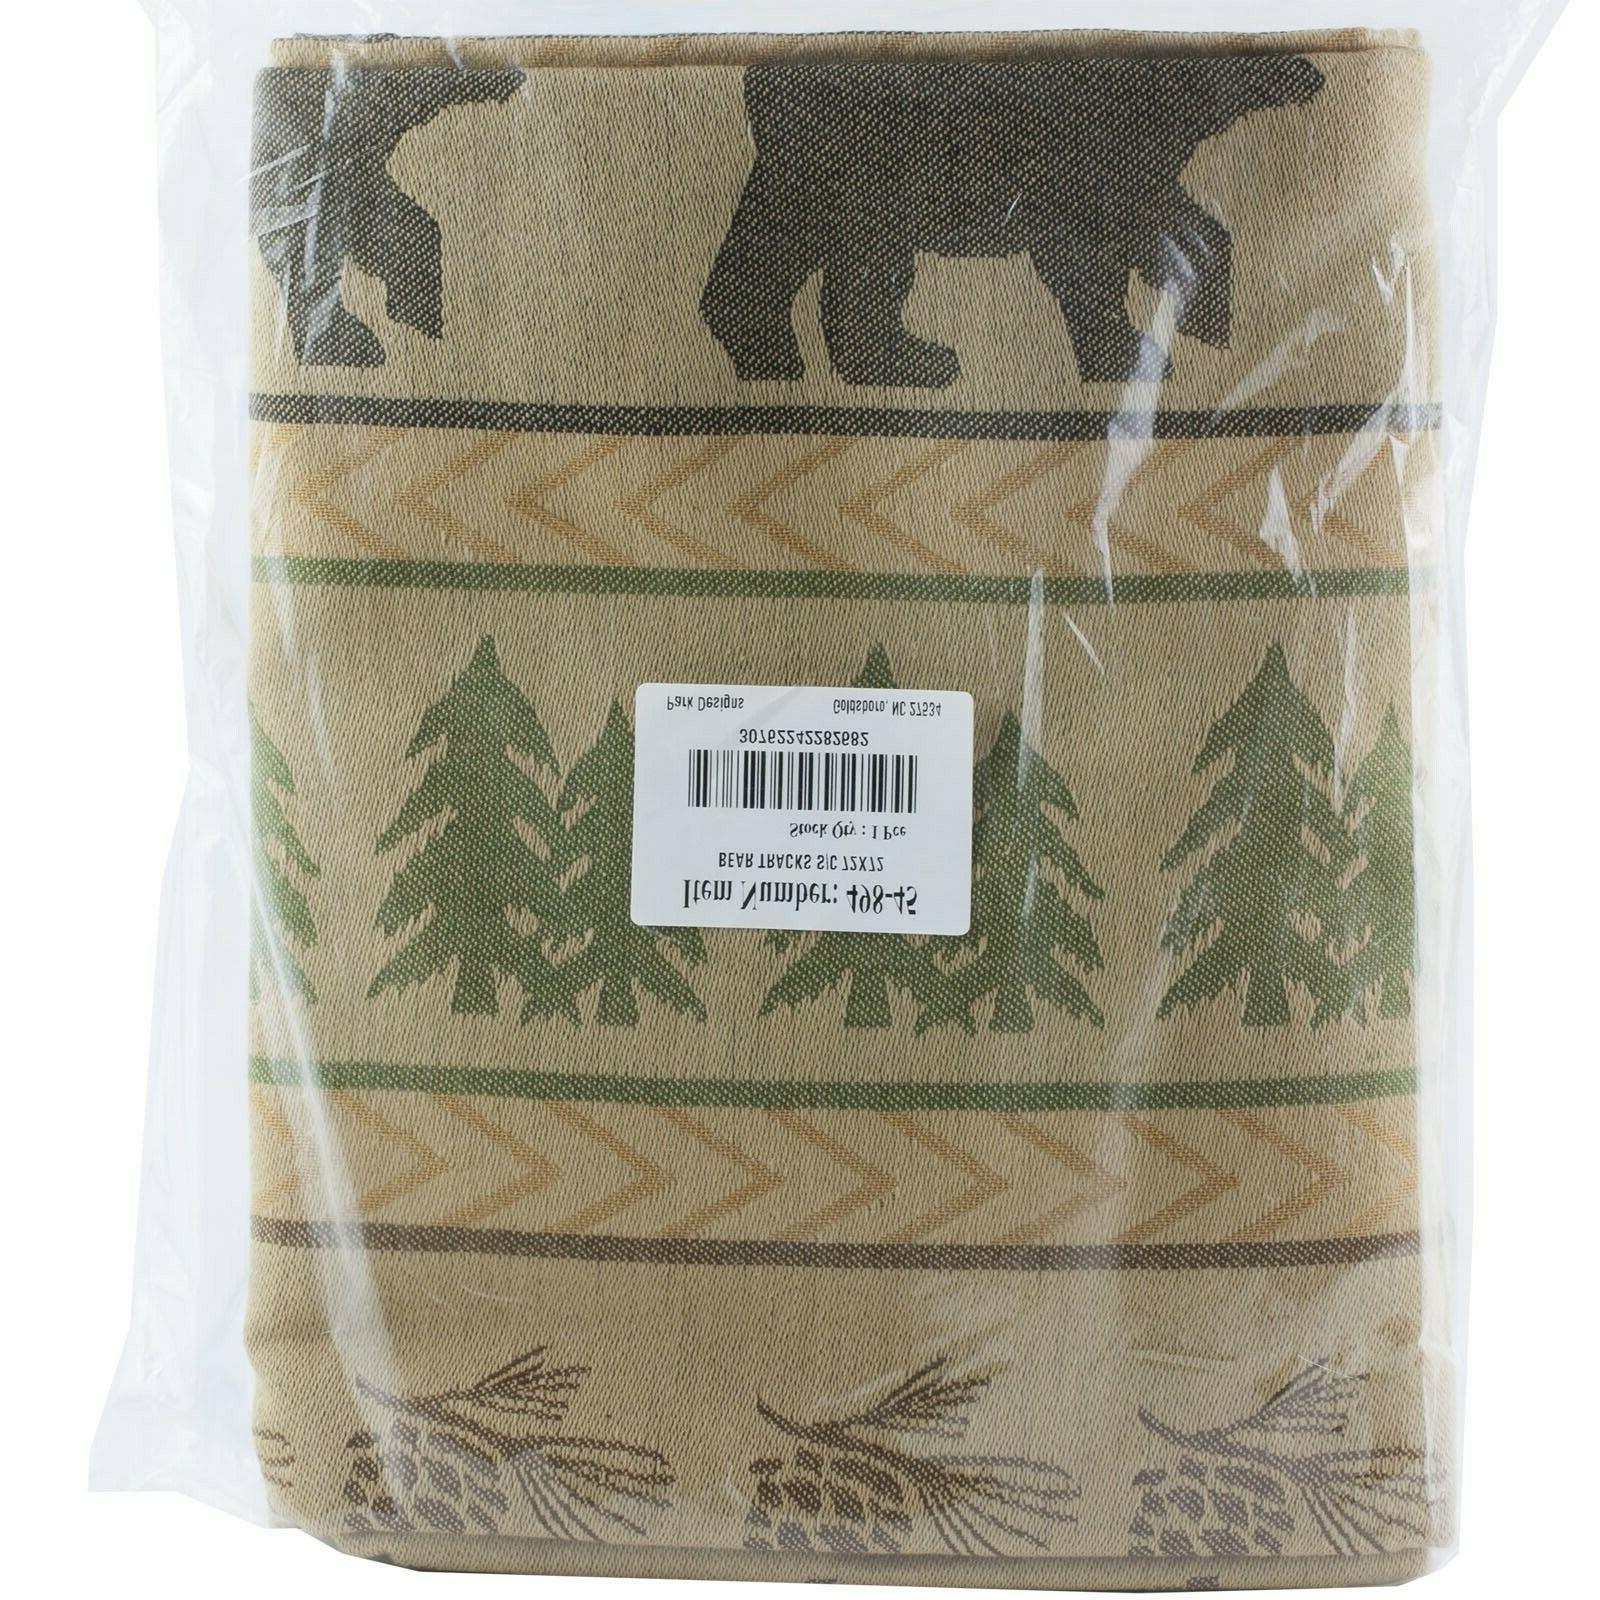 Park Designs Bear Tracks Shower Curtain, 72 x 72